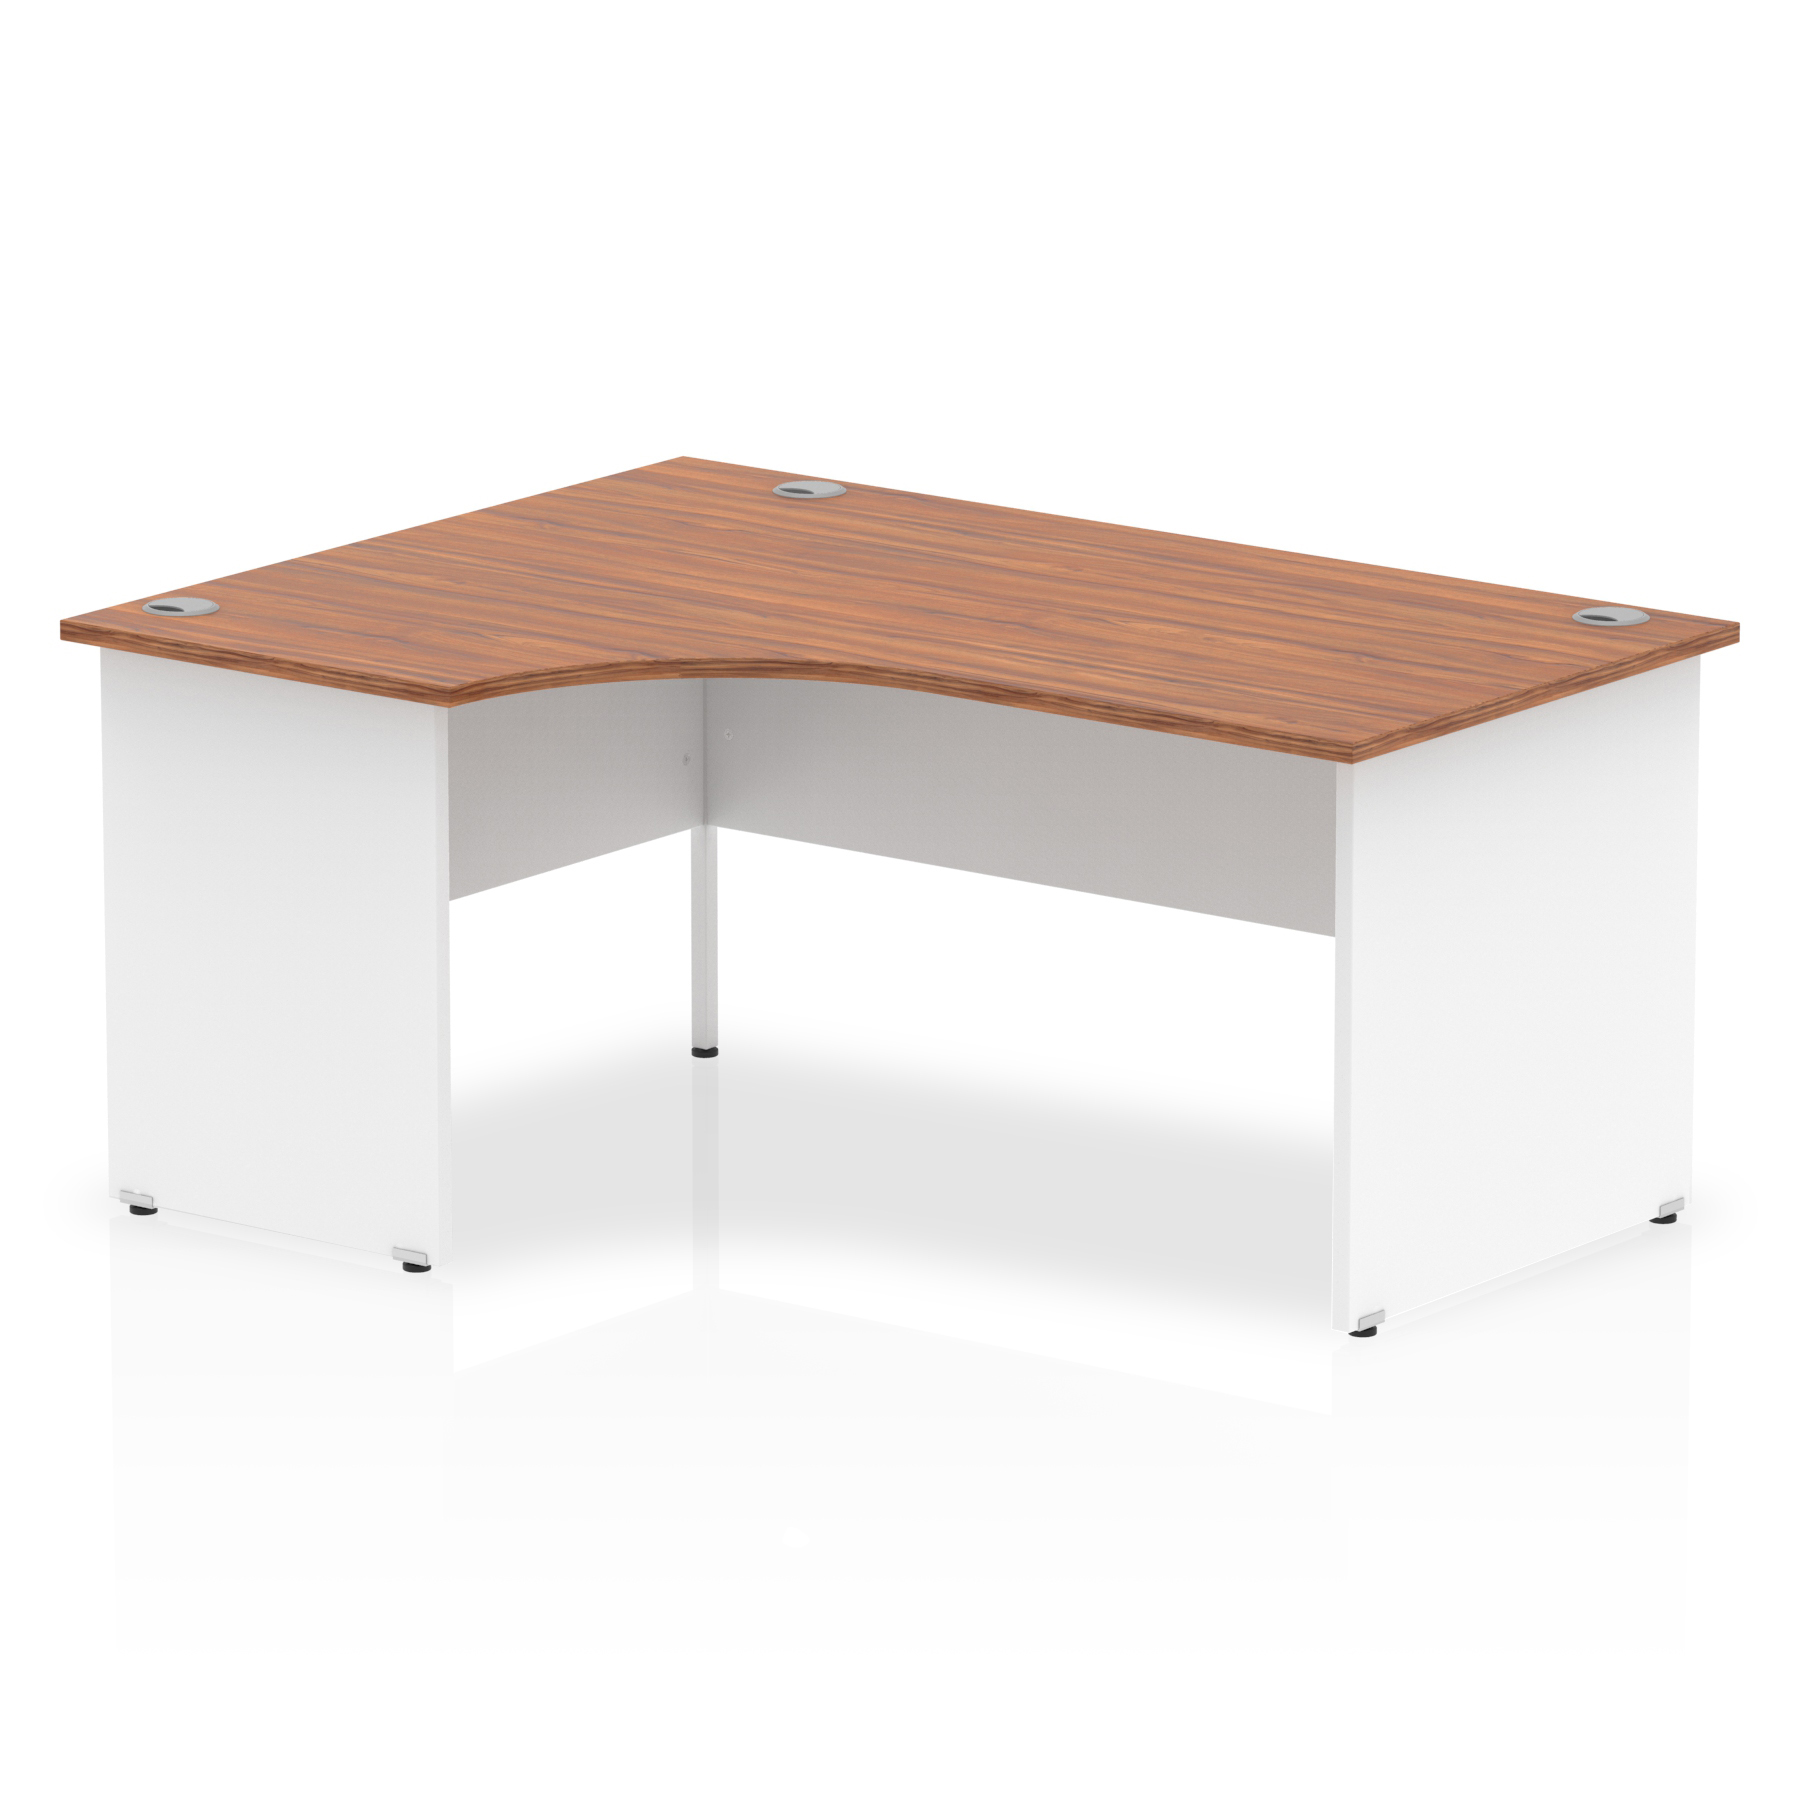 Trexus Desk Crescent Left Hand Panel End 1600x800mm Walnut Top White Panels Ref TT000025